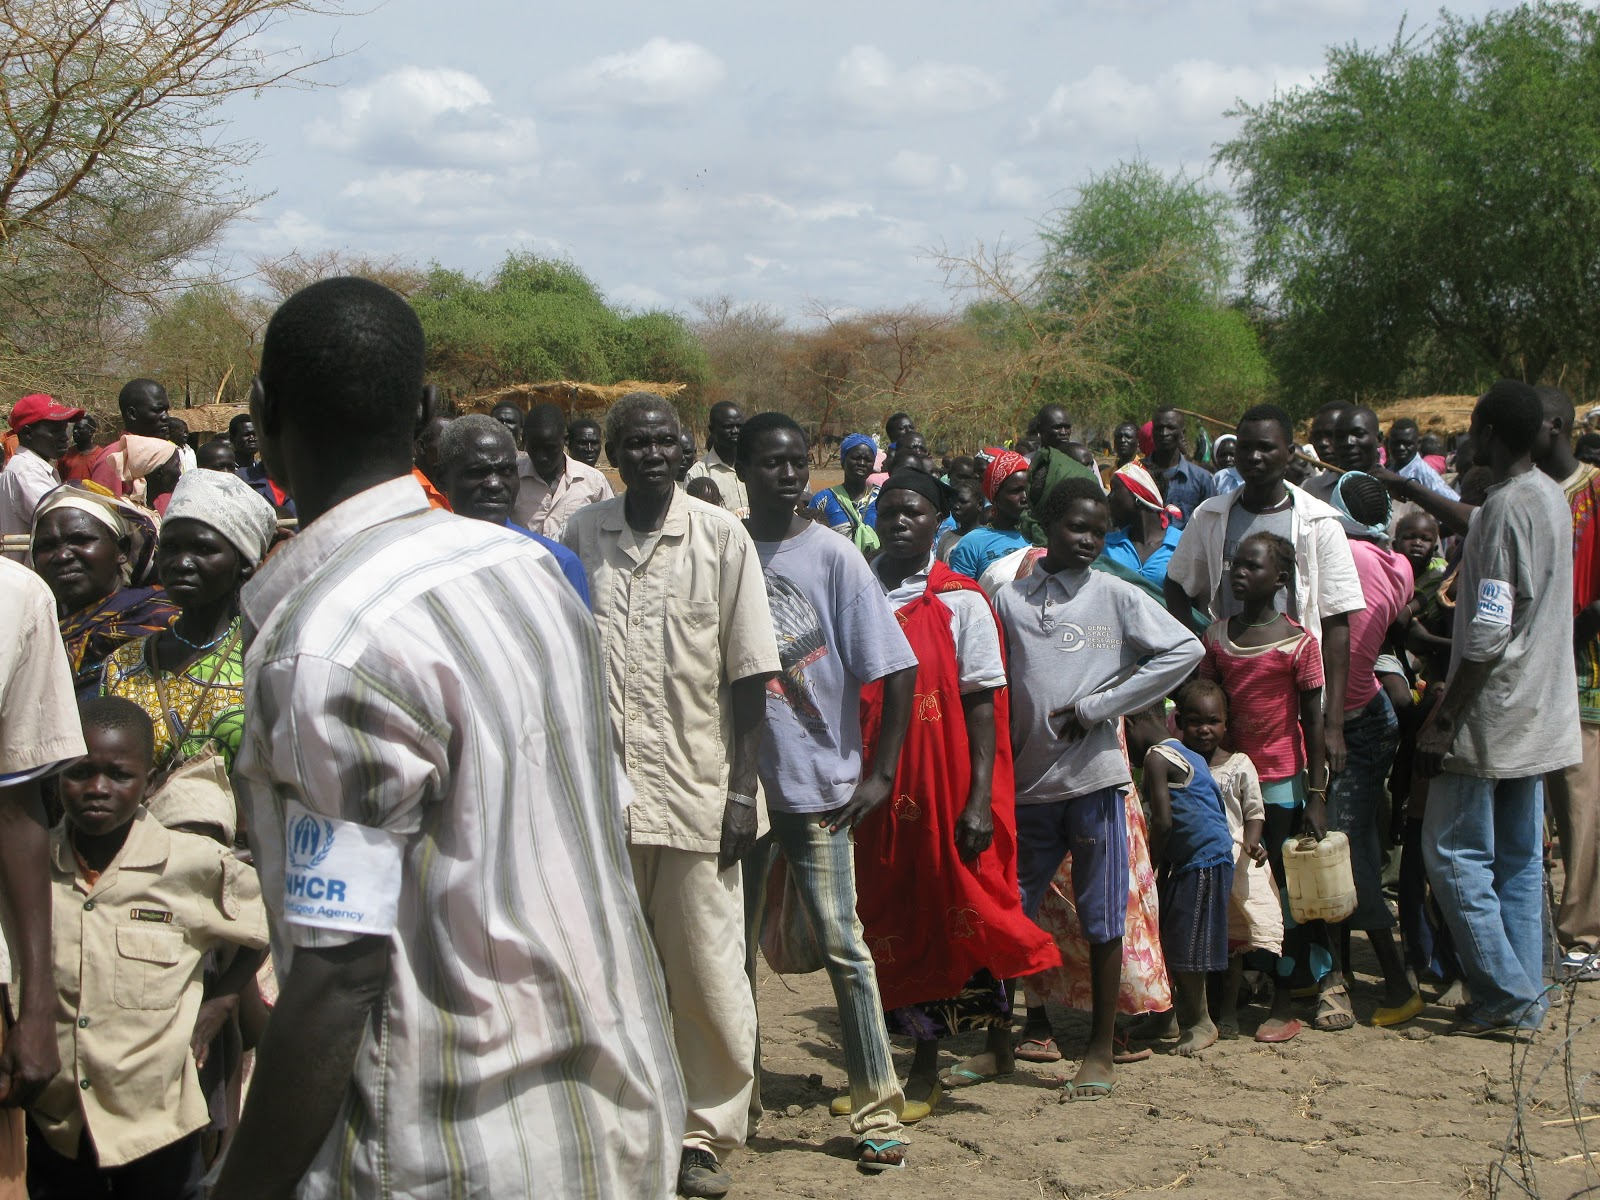 Working with UNHCR to help refugees in South Sudan 6972528722 1